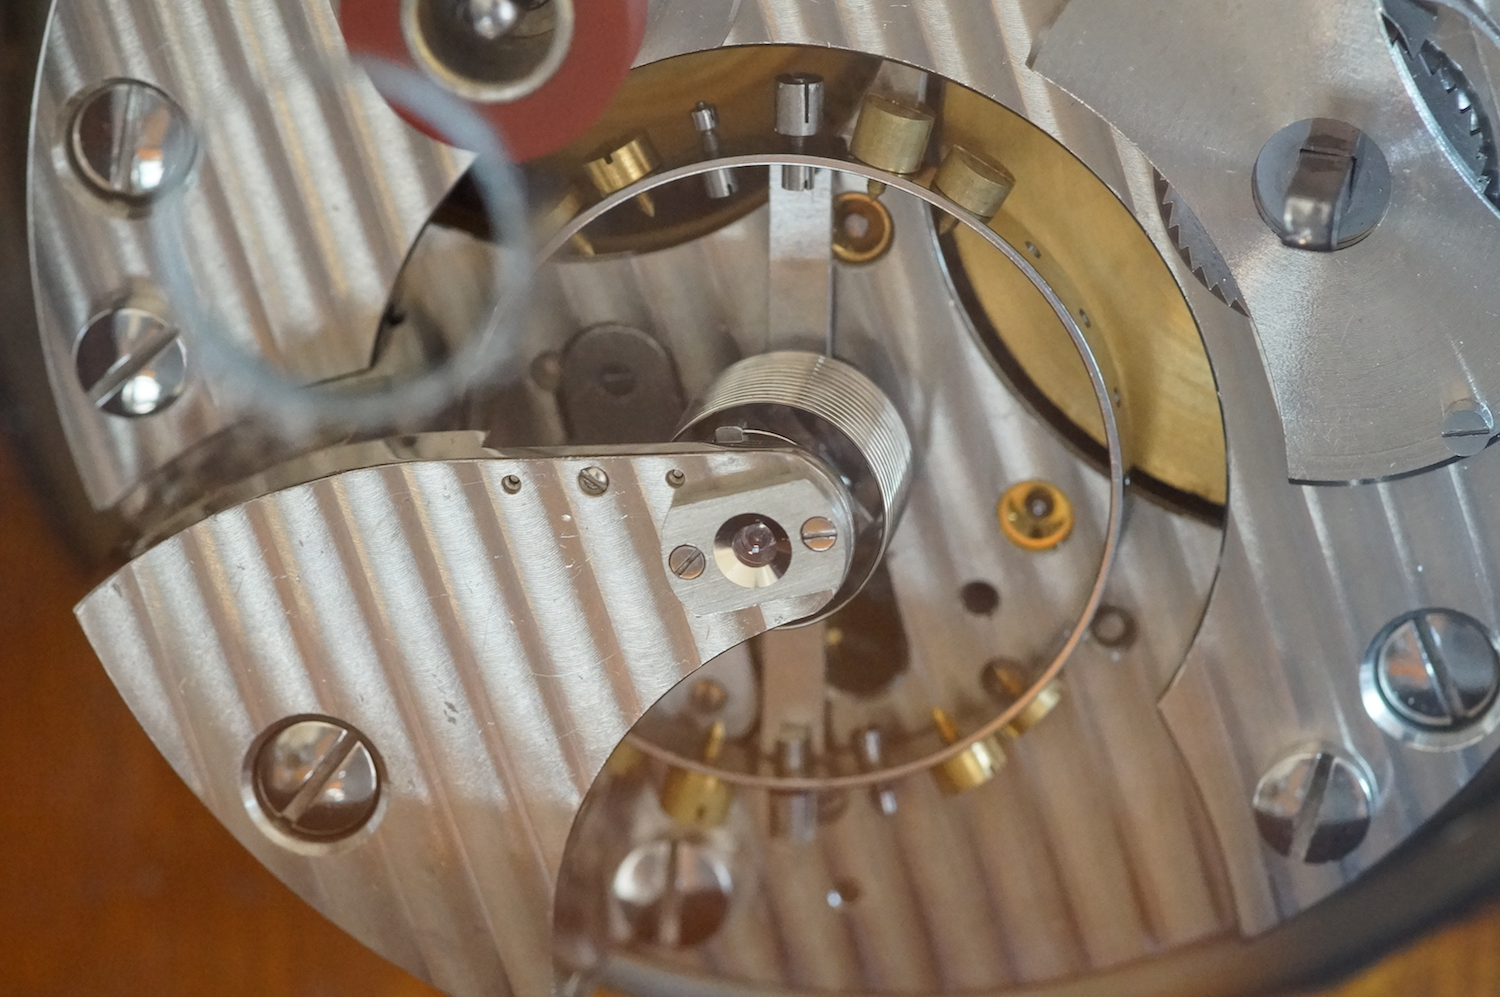 Hamilton Ship's Chronometer Type 21